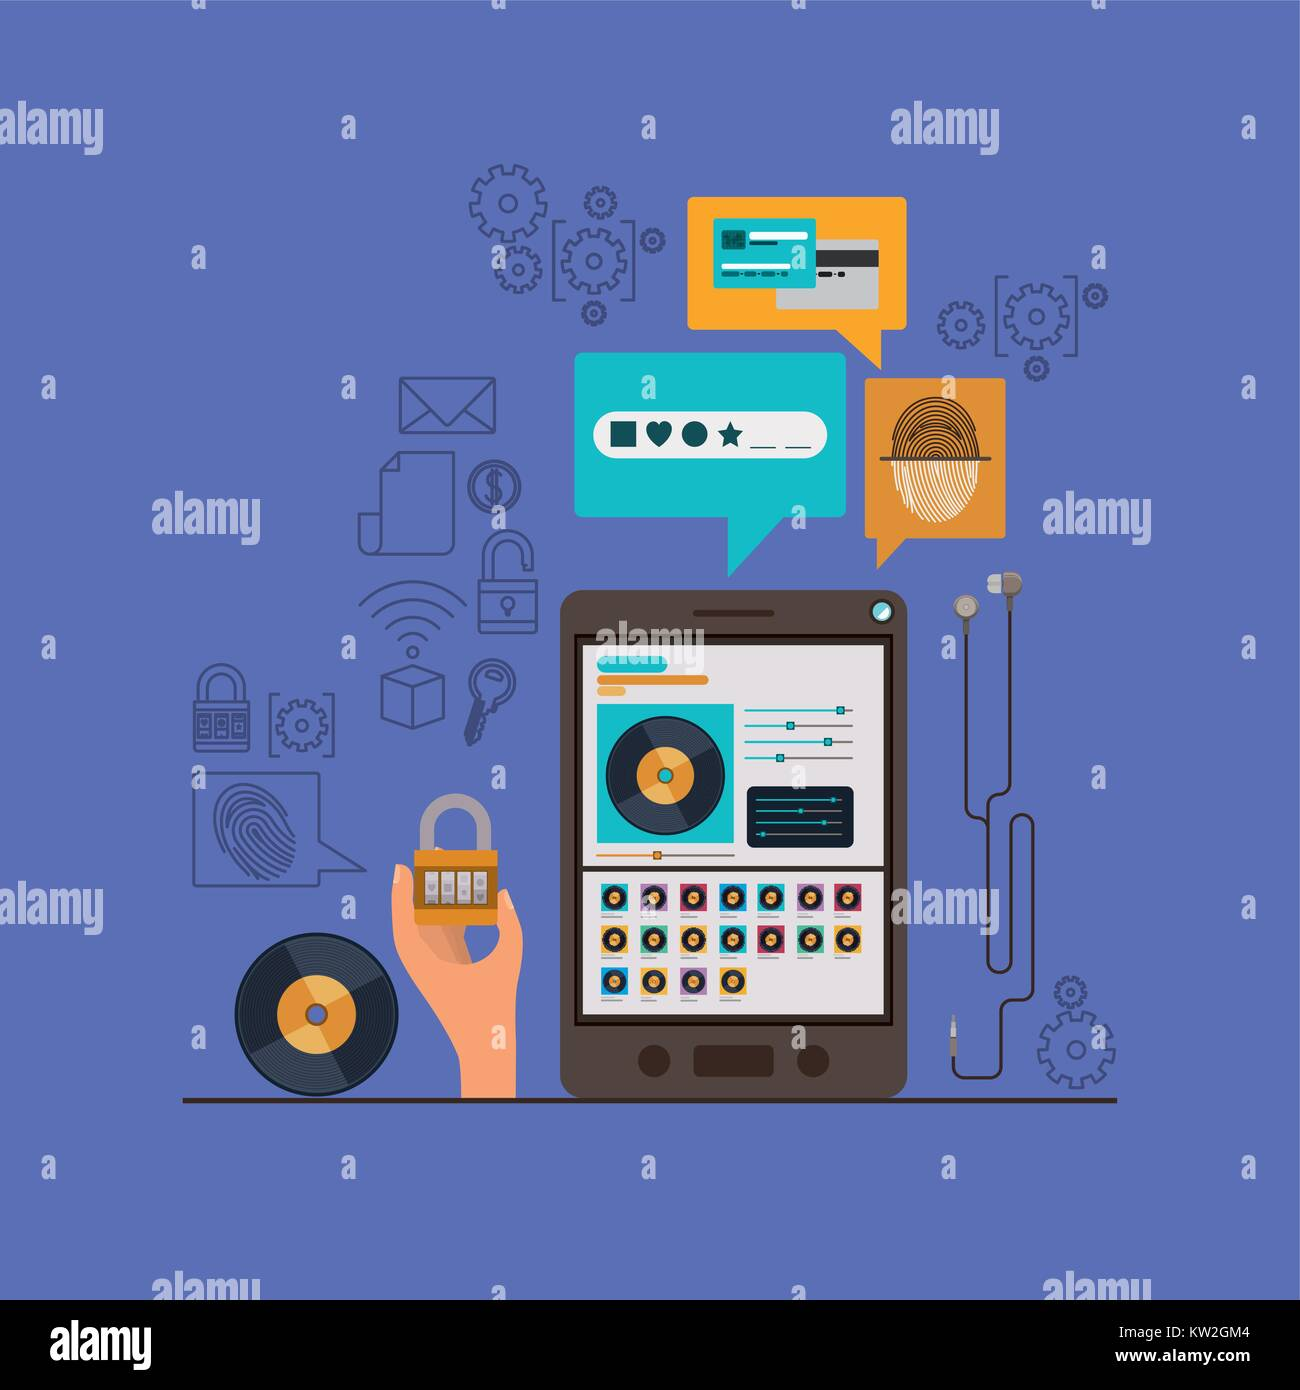 mobile security with tablet device and secure apps in violet color background - Stock Image